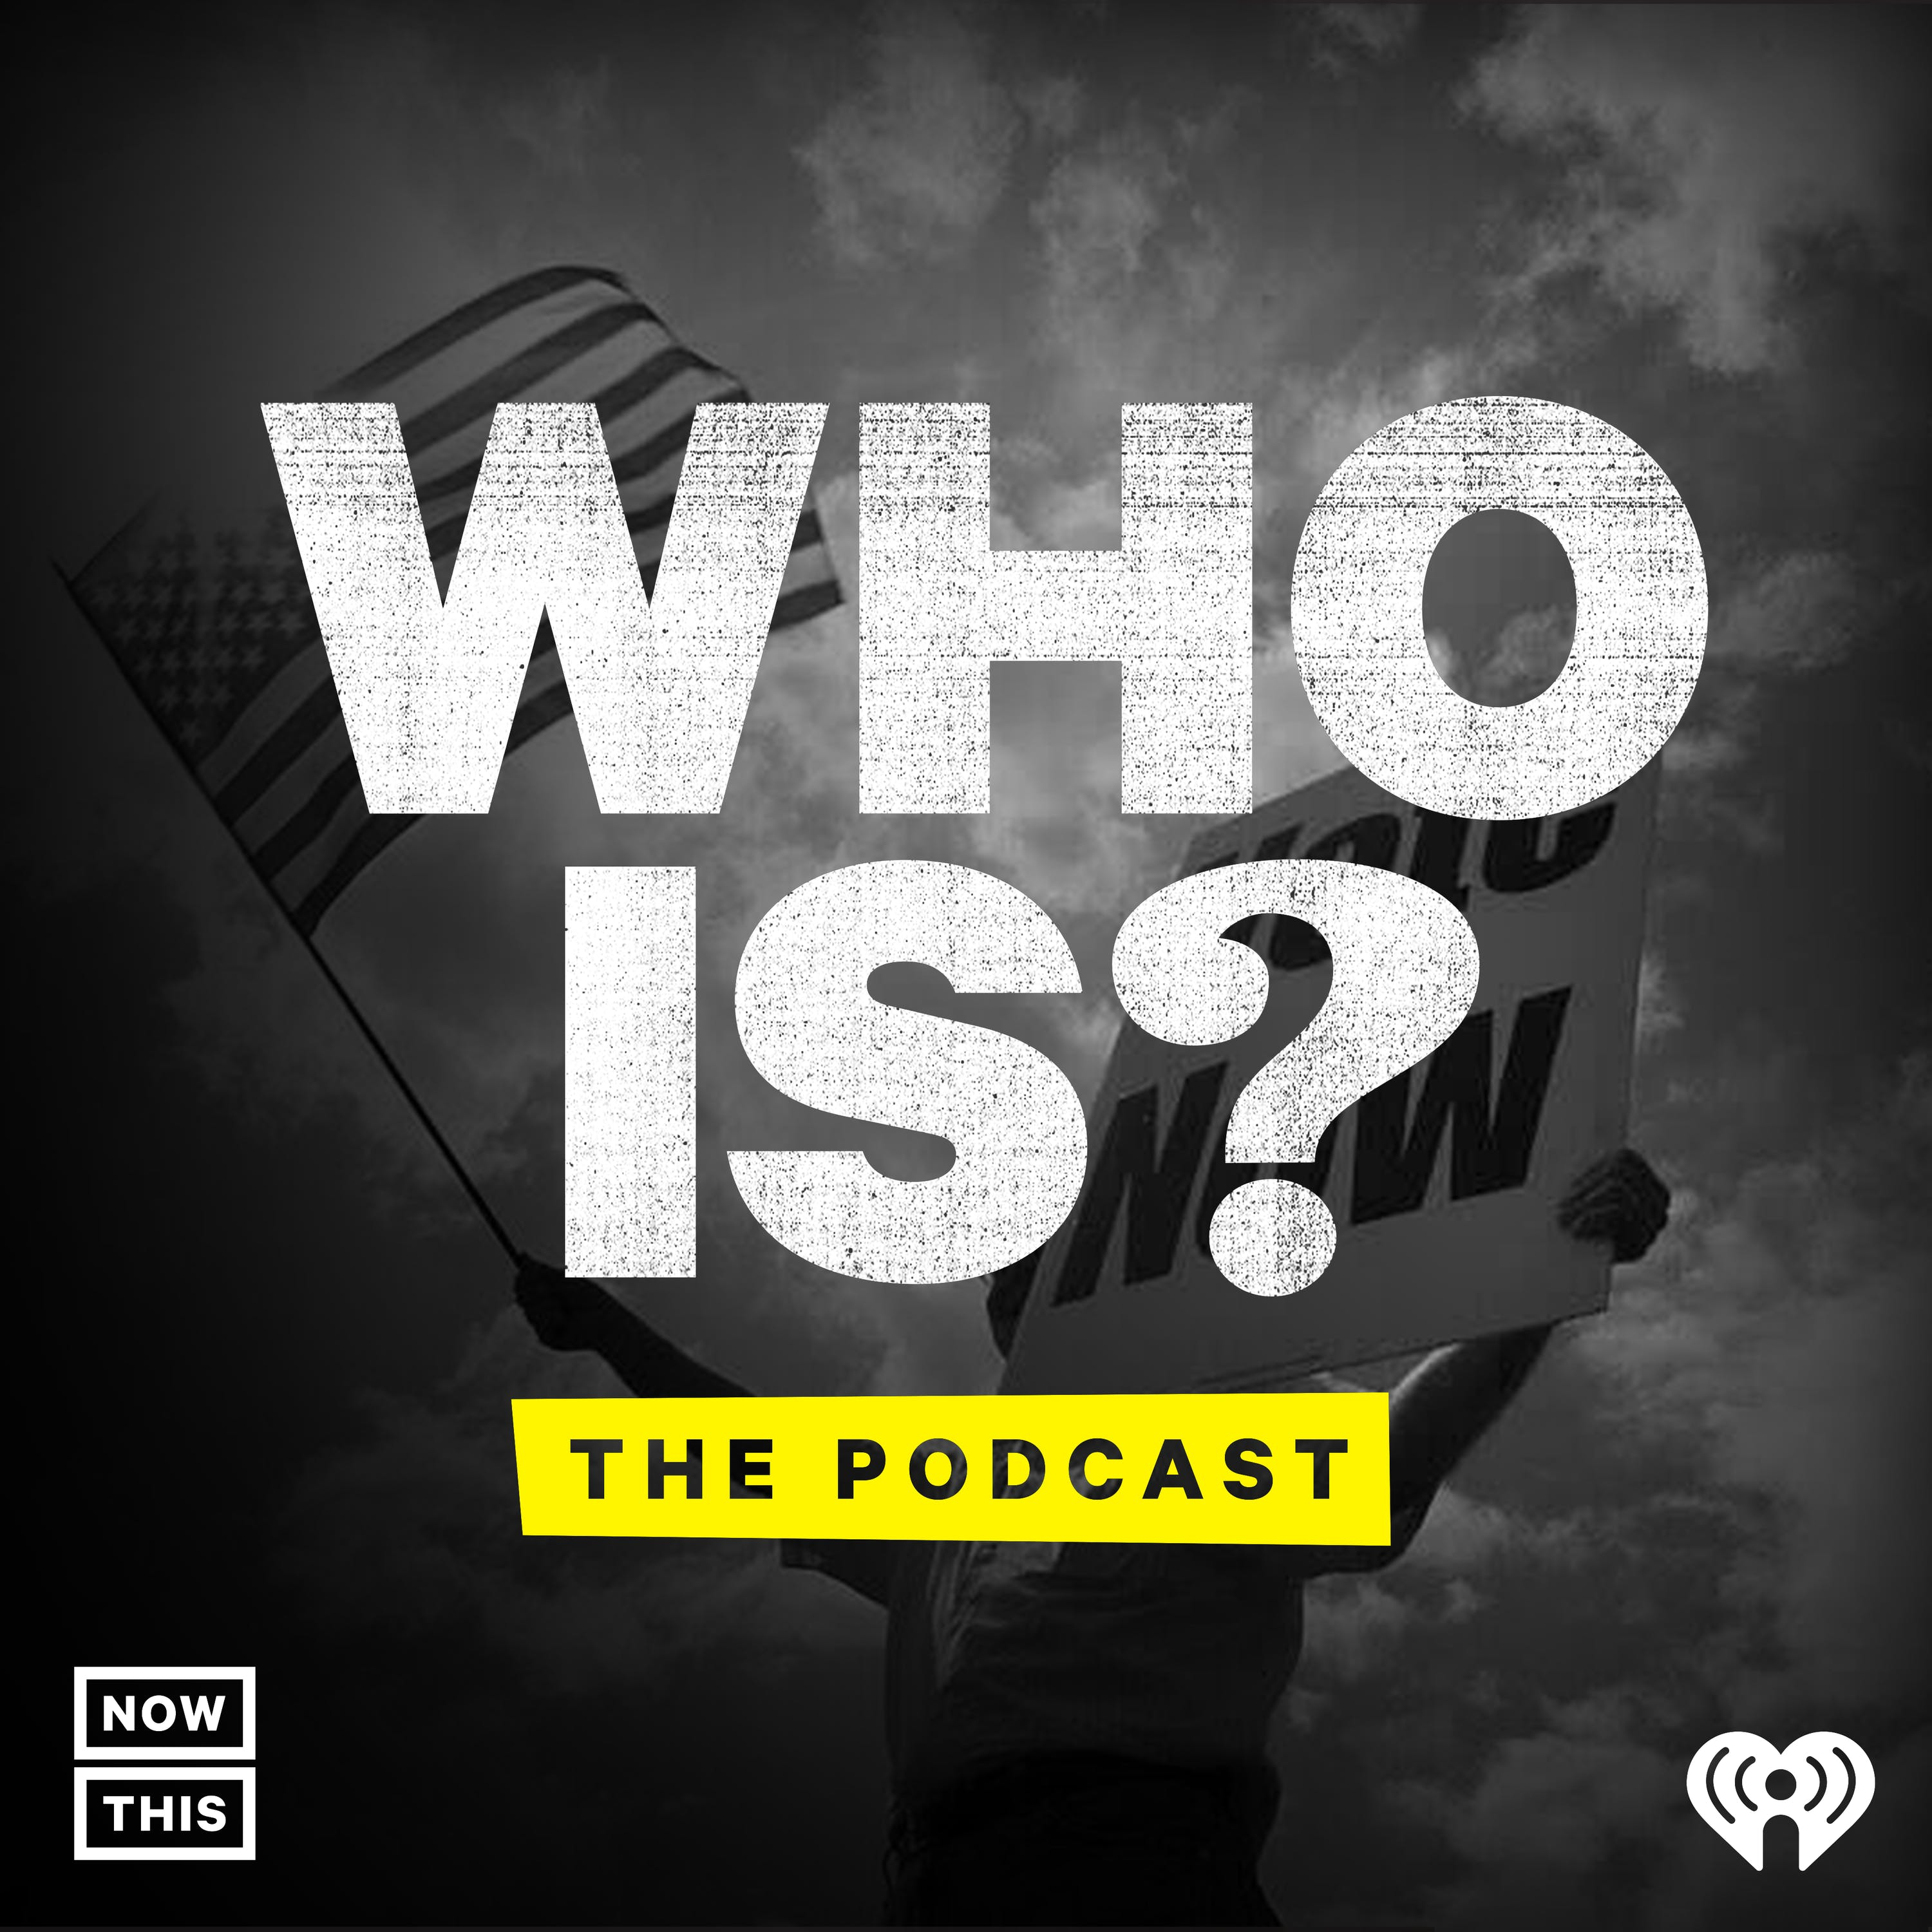 Who Is A Conversation with Rev. Dr. William Barber II